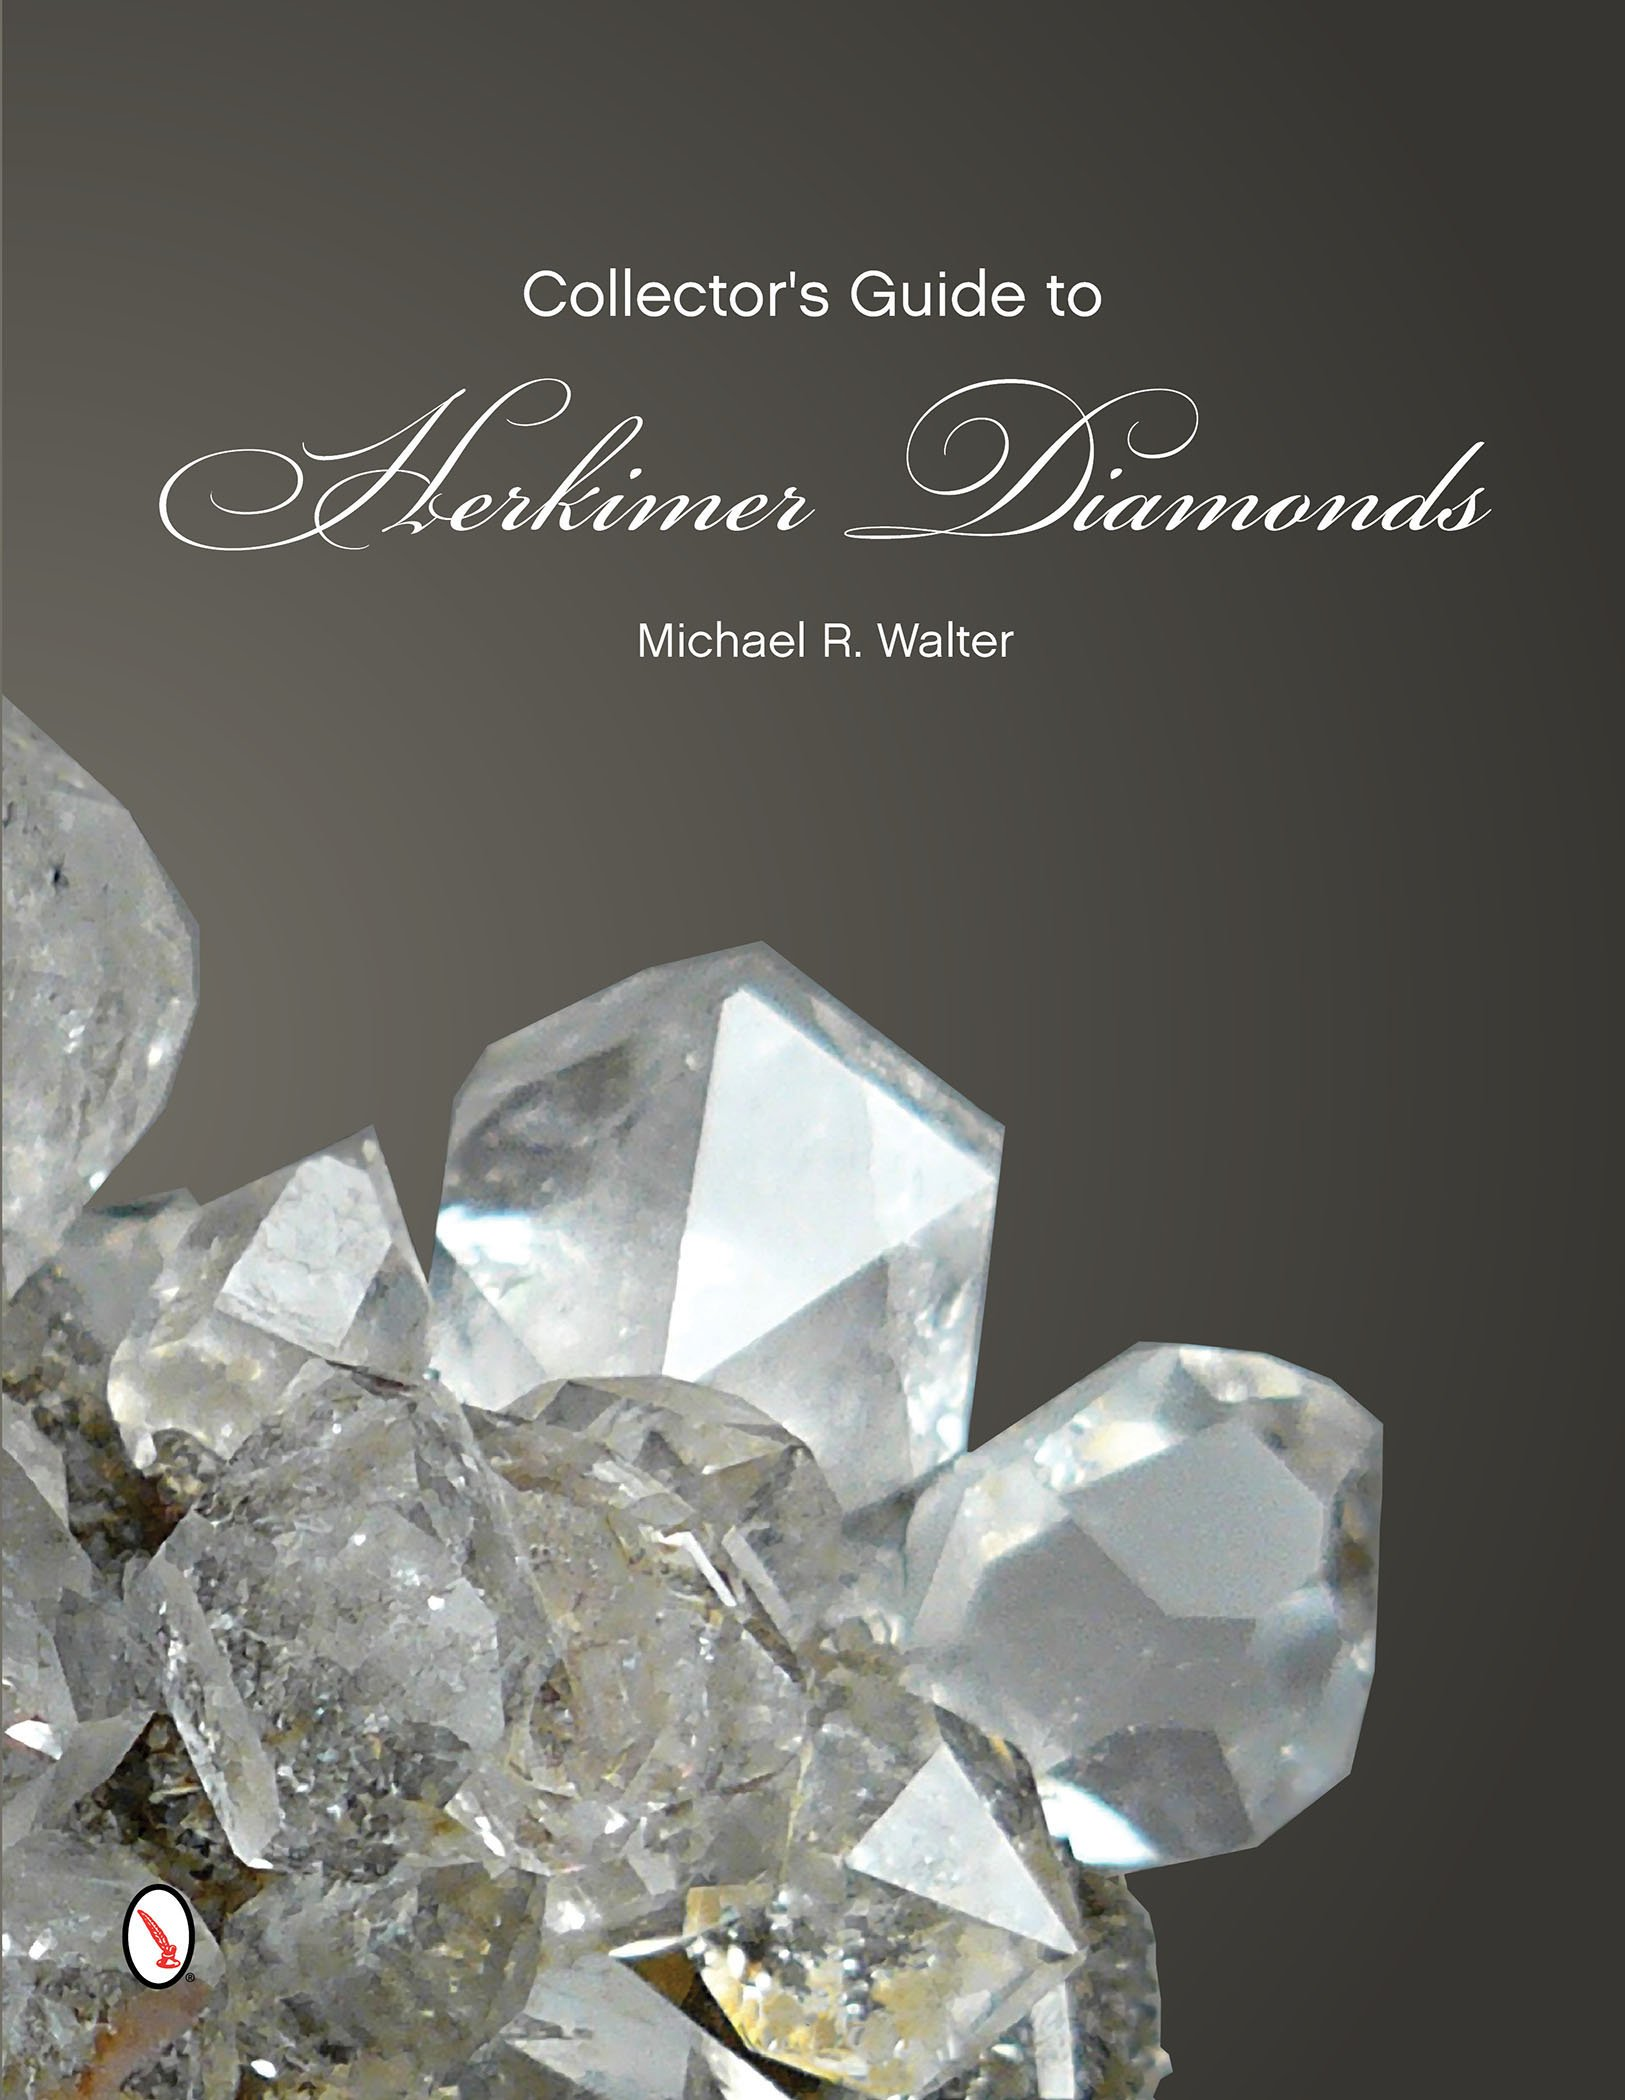 Mineralogical related books, magazines, periodicals, writtings This book is on Herkimer Diamonds, by Michael Walter..